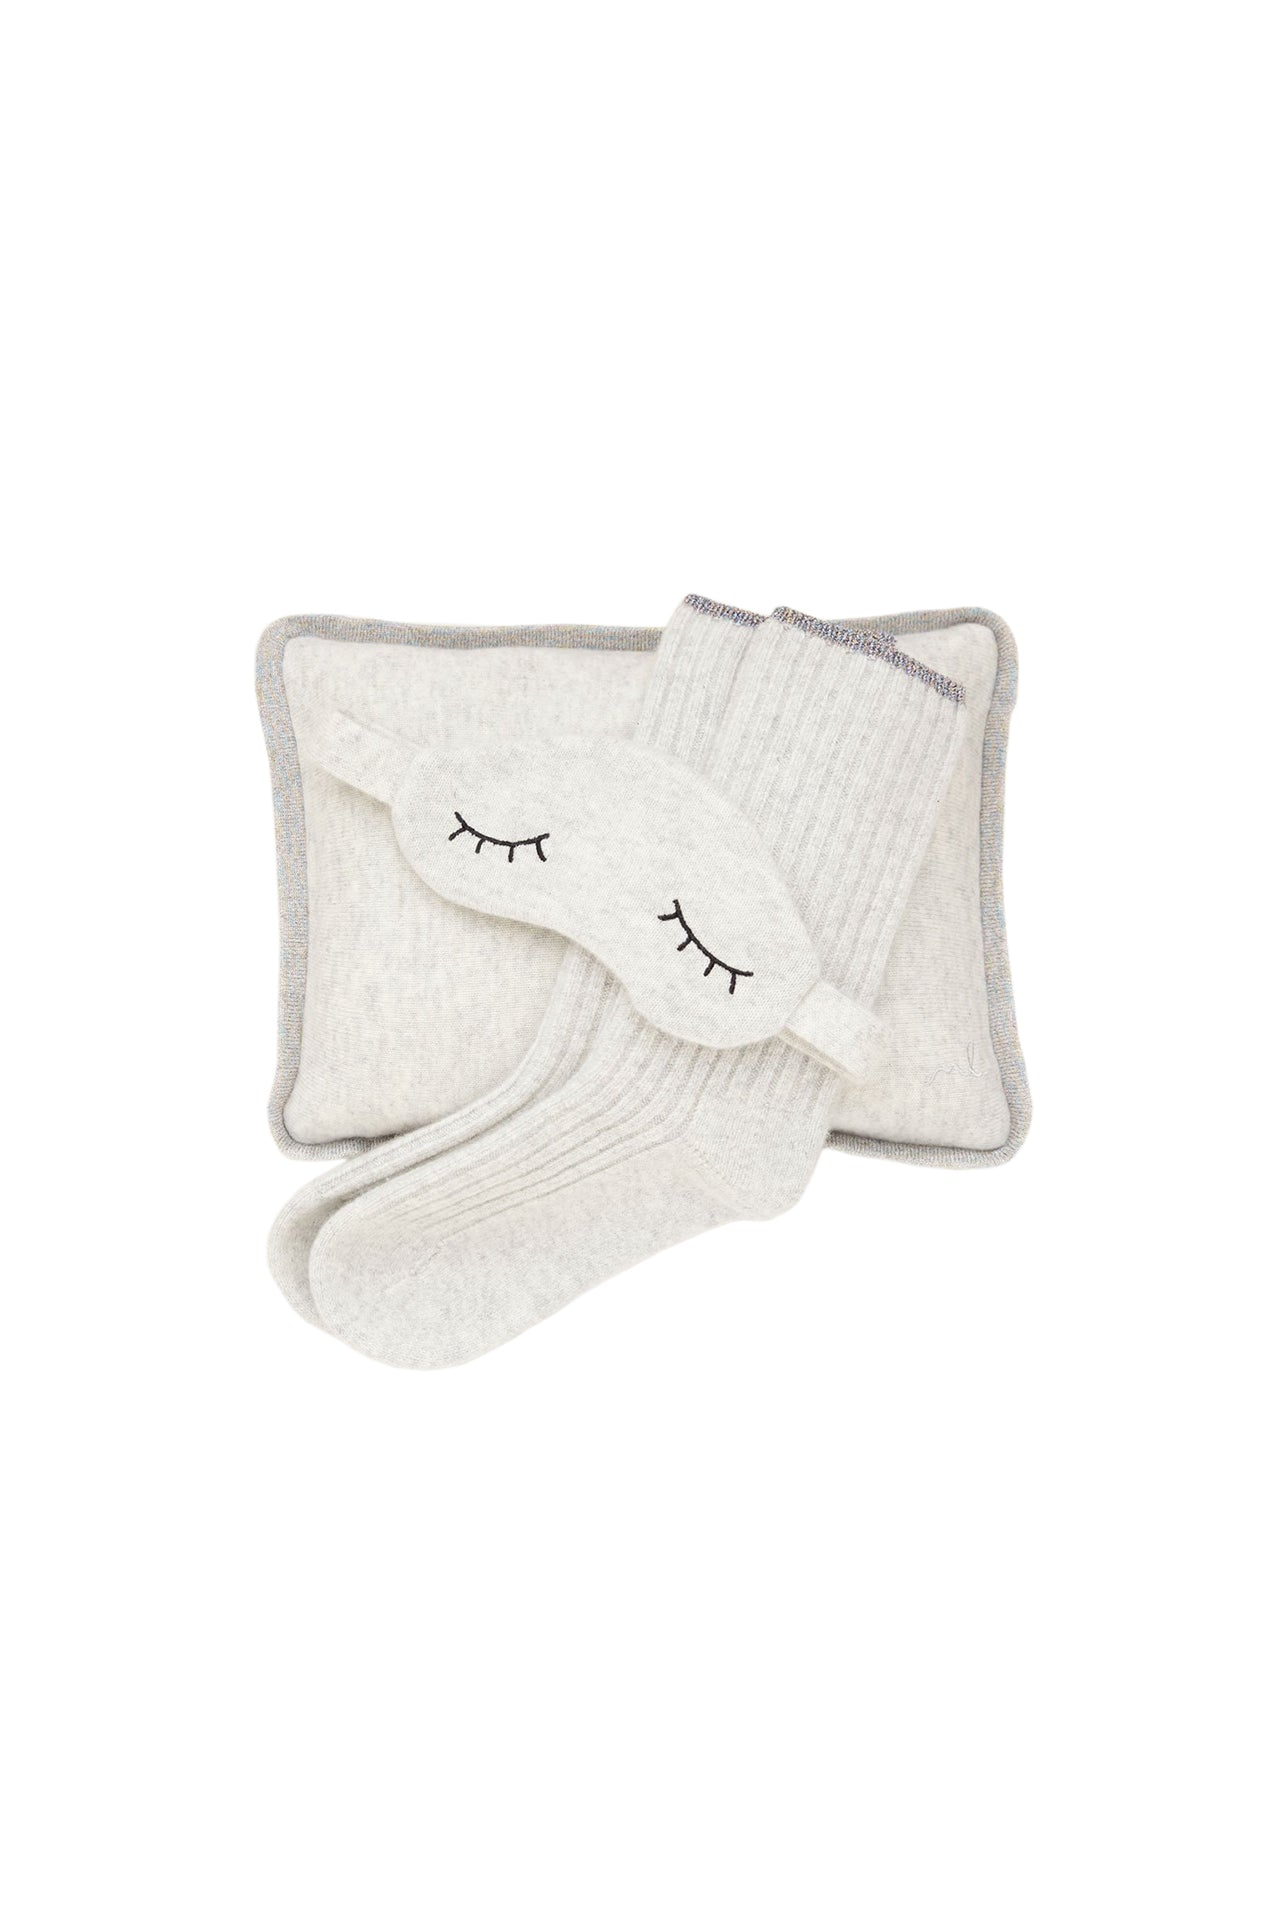 Sleepy Cashmere Gift Set